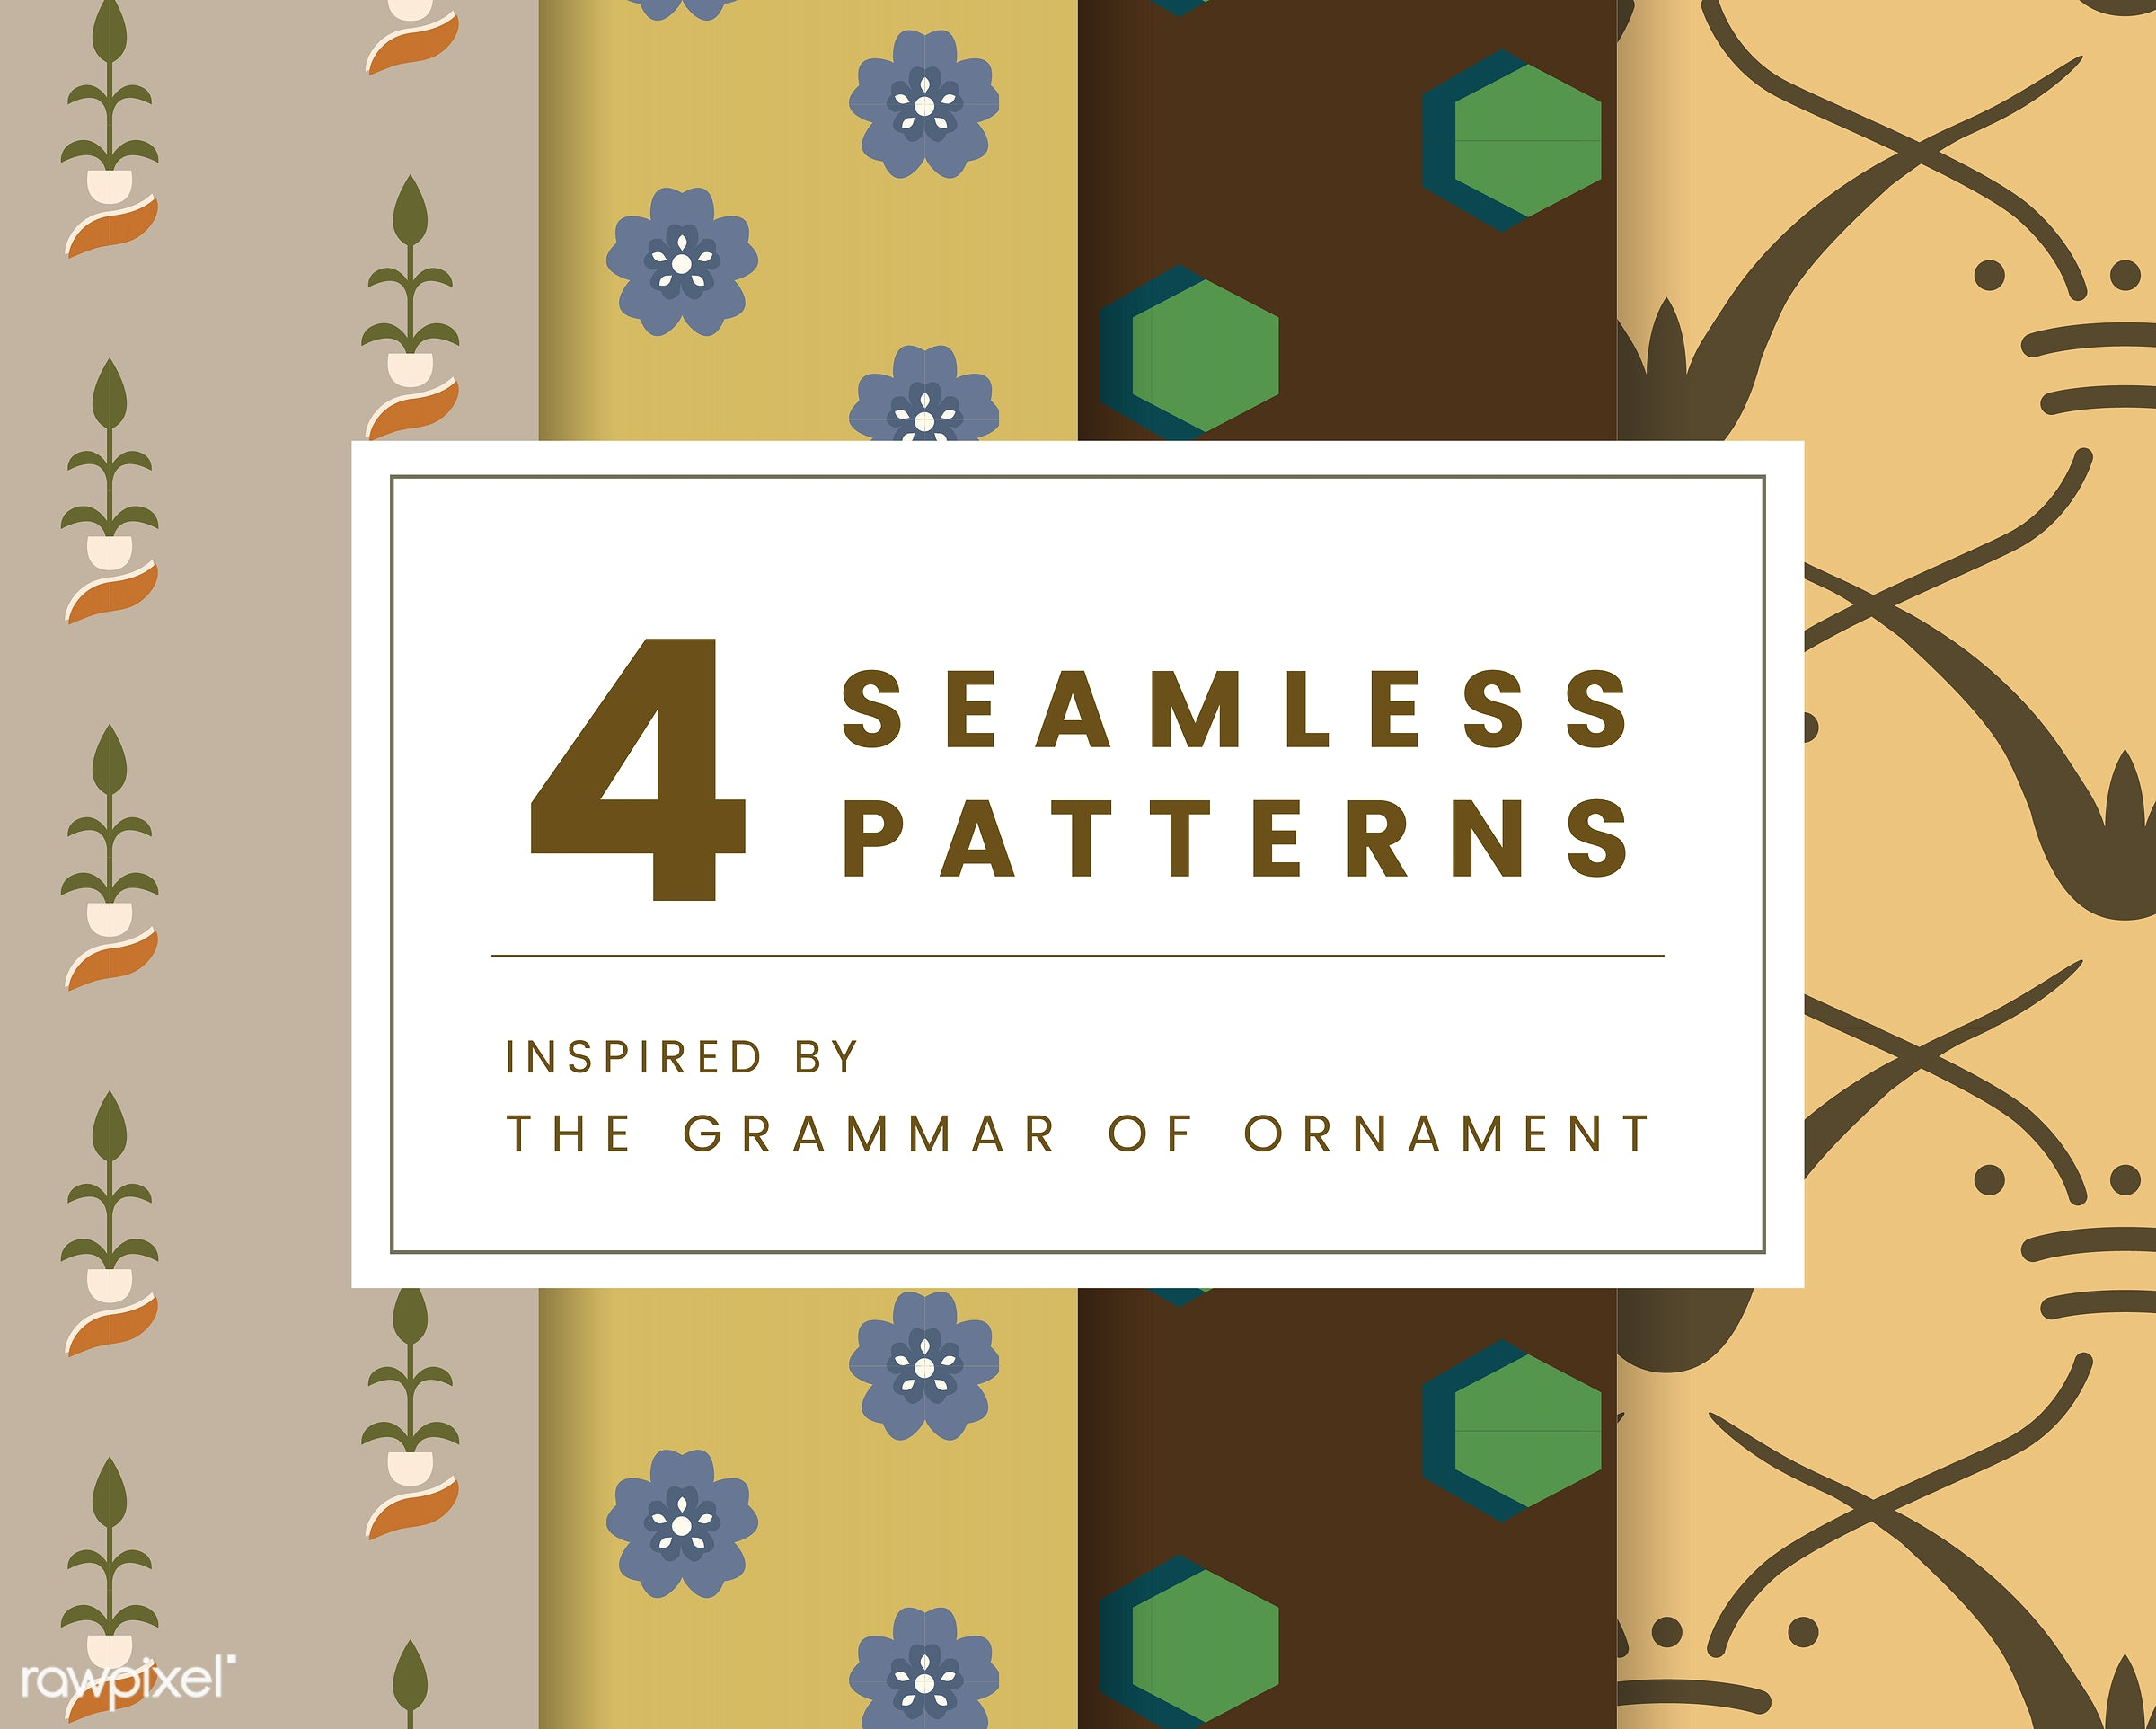 Set of 4 vintage patterns inspired by The Grammar of Ornament  - pattern, vintage, seamless, modern, texture, print, design...